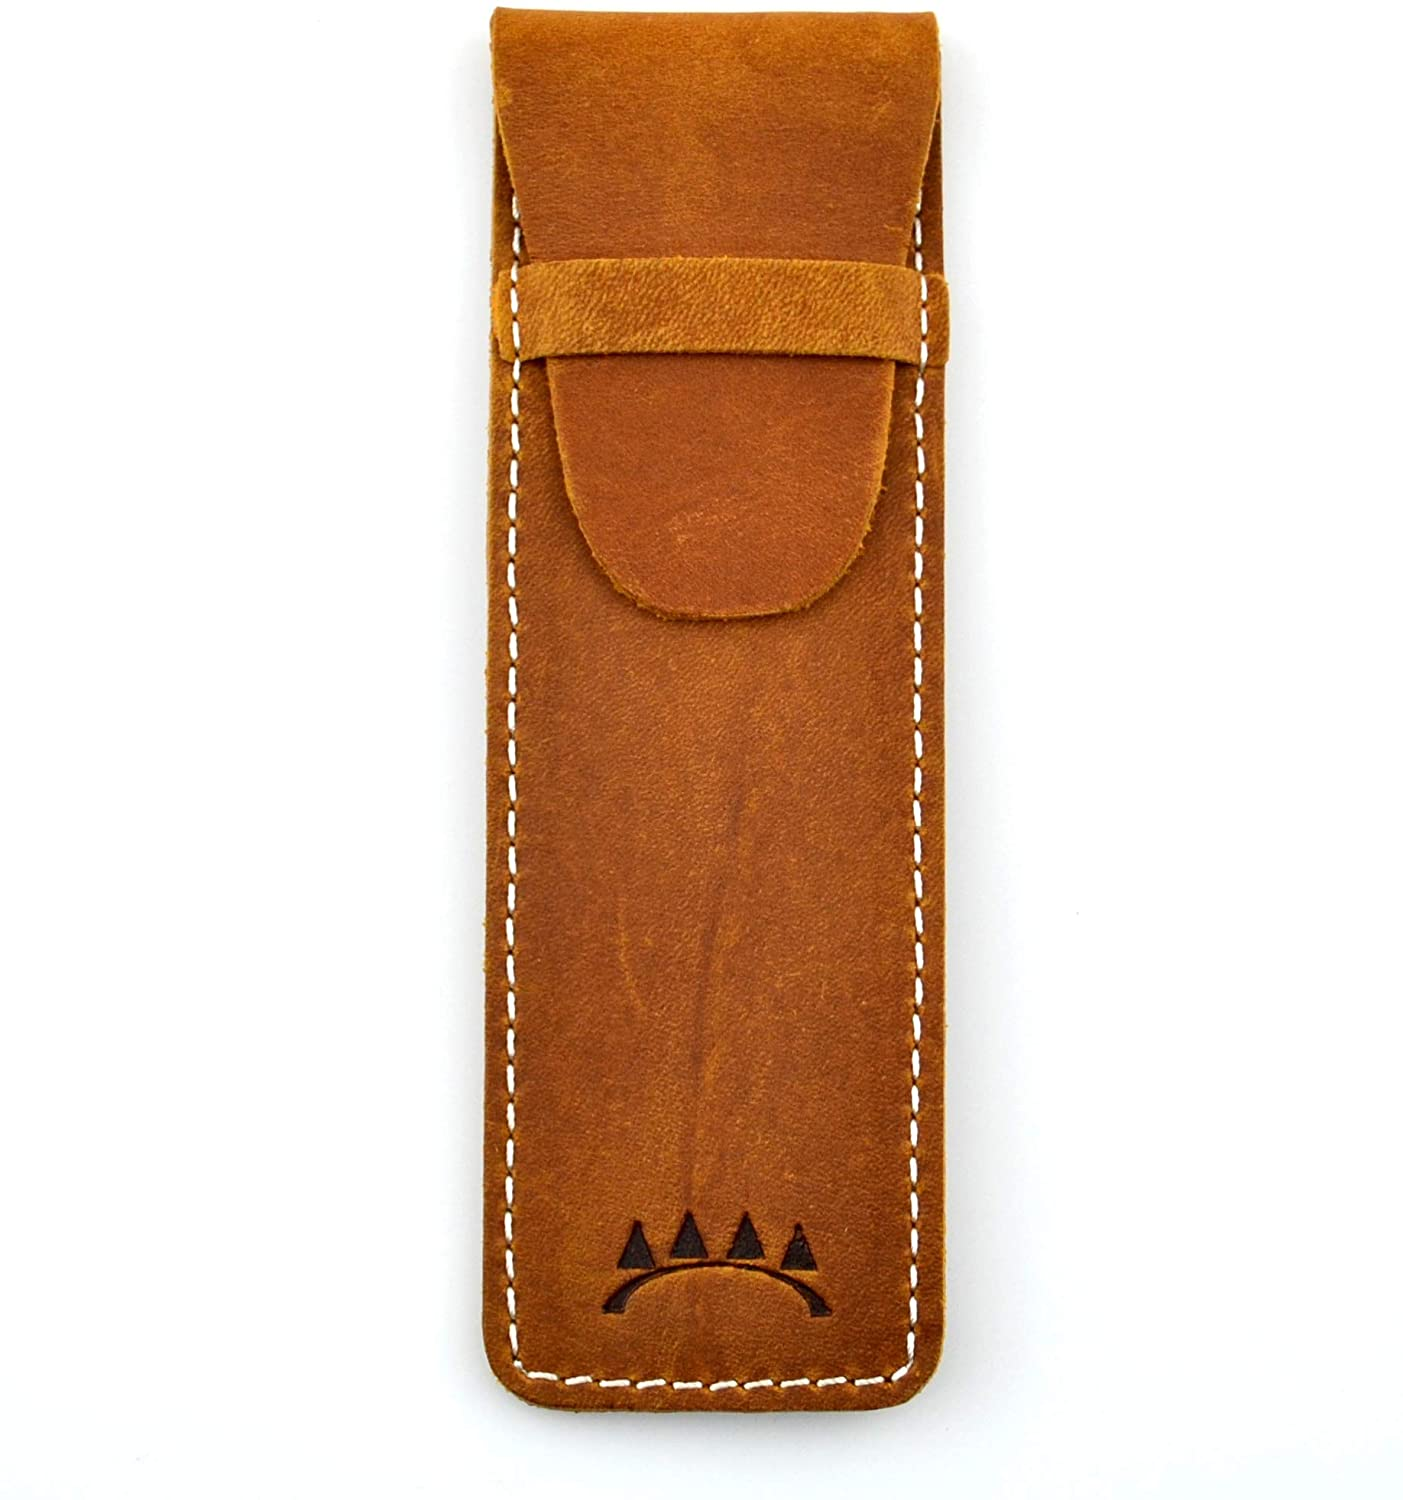 Genuine Leather Single Pen Case with Flap Close, Top Grain Leather (Brown)